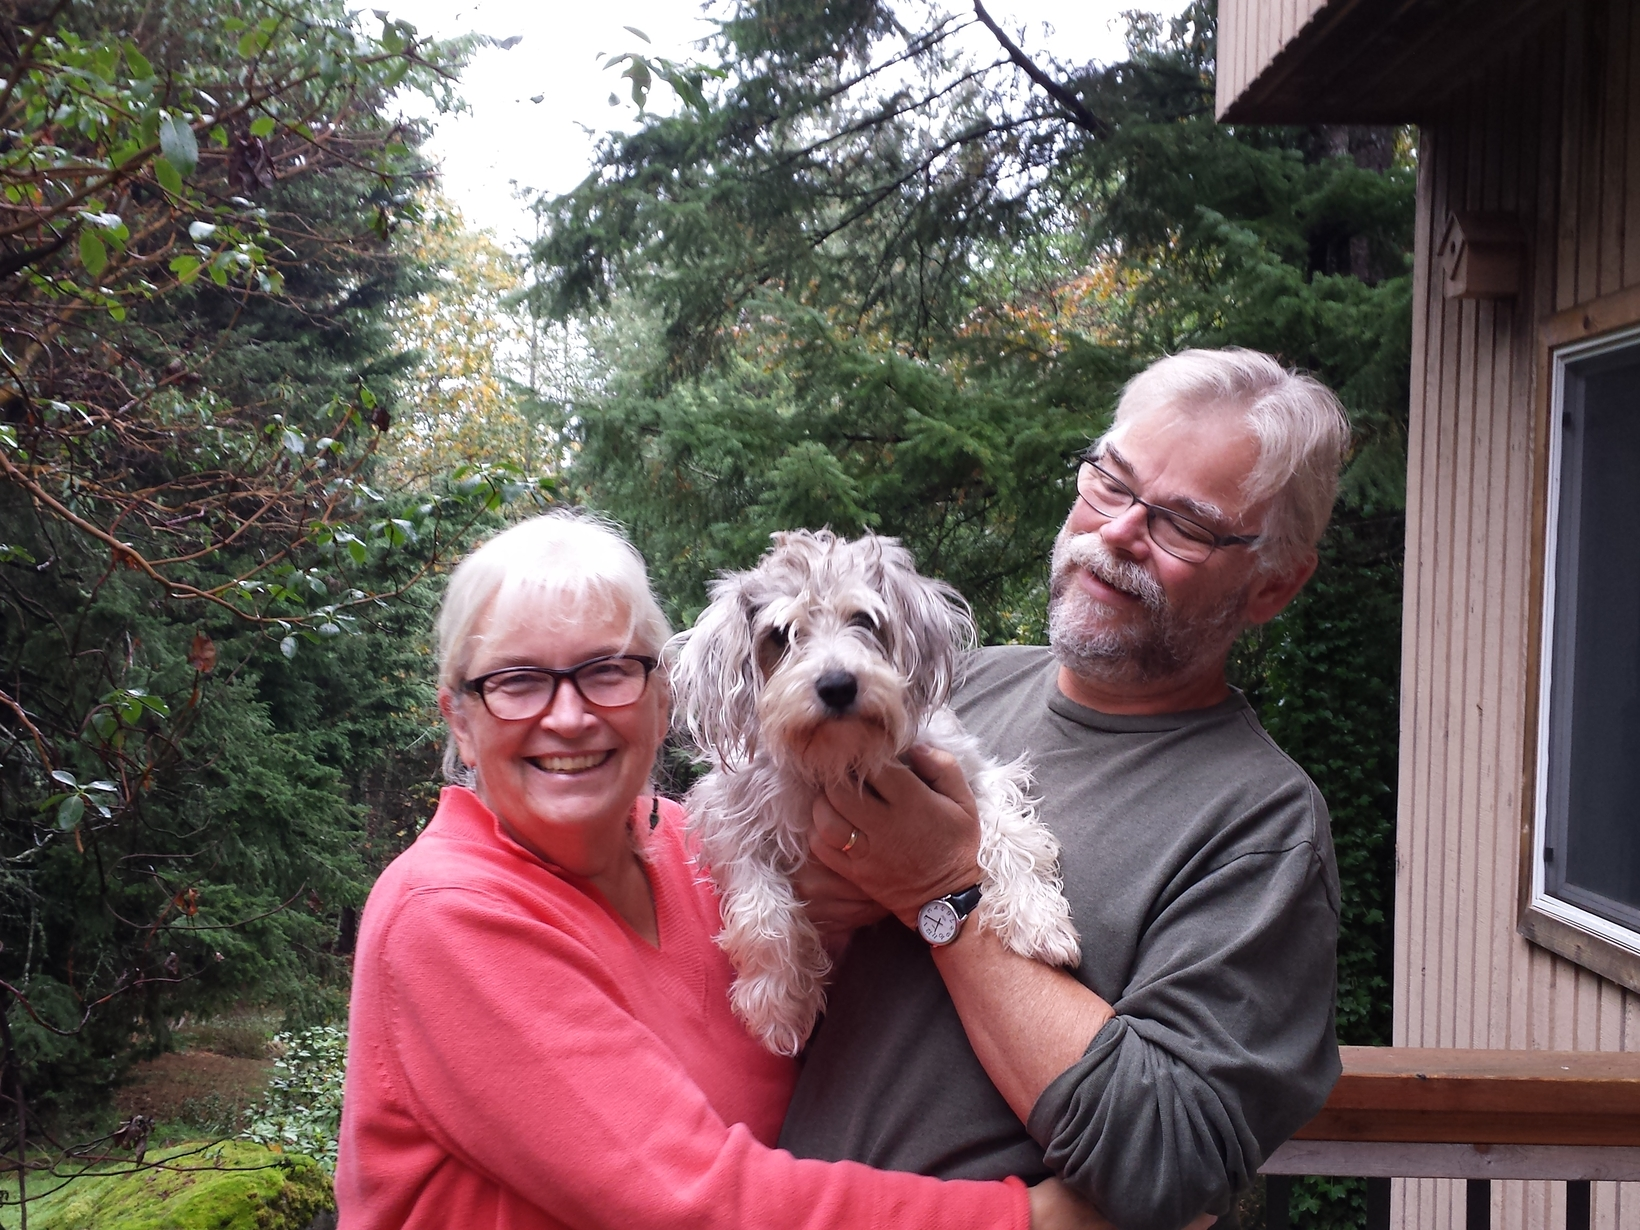 Sonja & Norman from Victoria, British Columbia, Canada